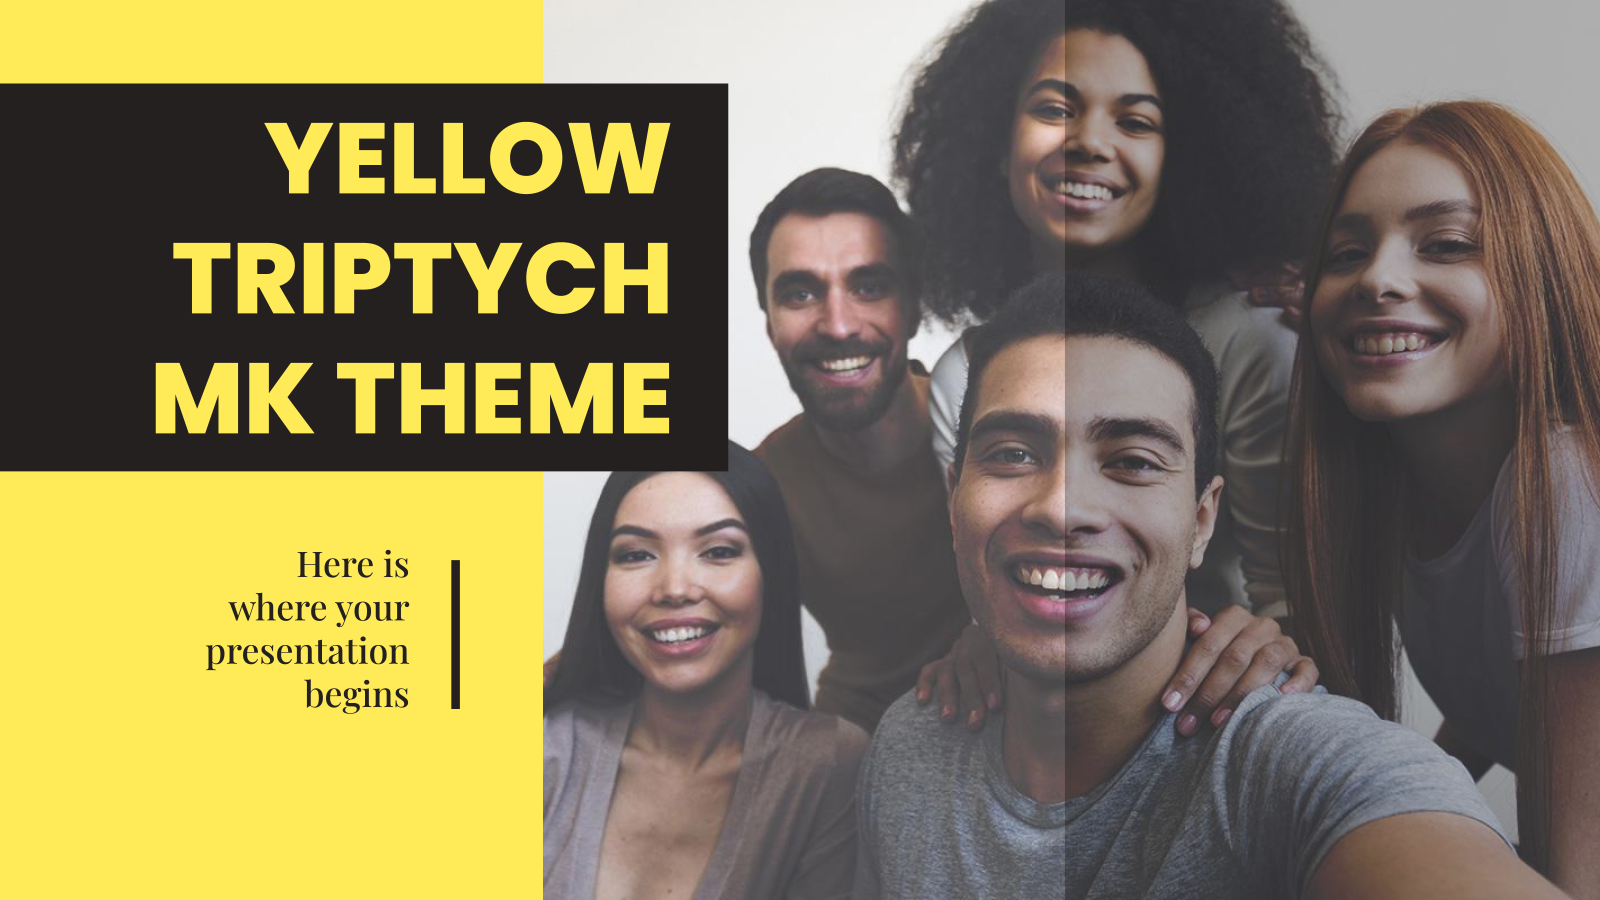 Yellow Triptych MK Theme presentation template